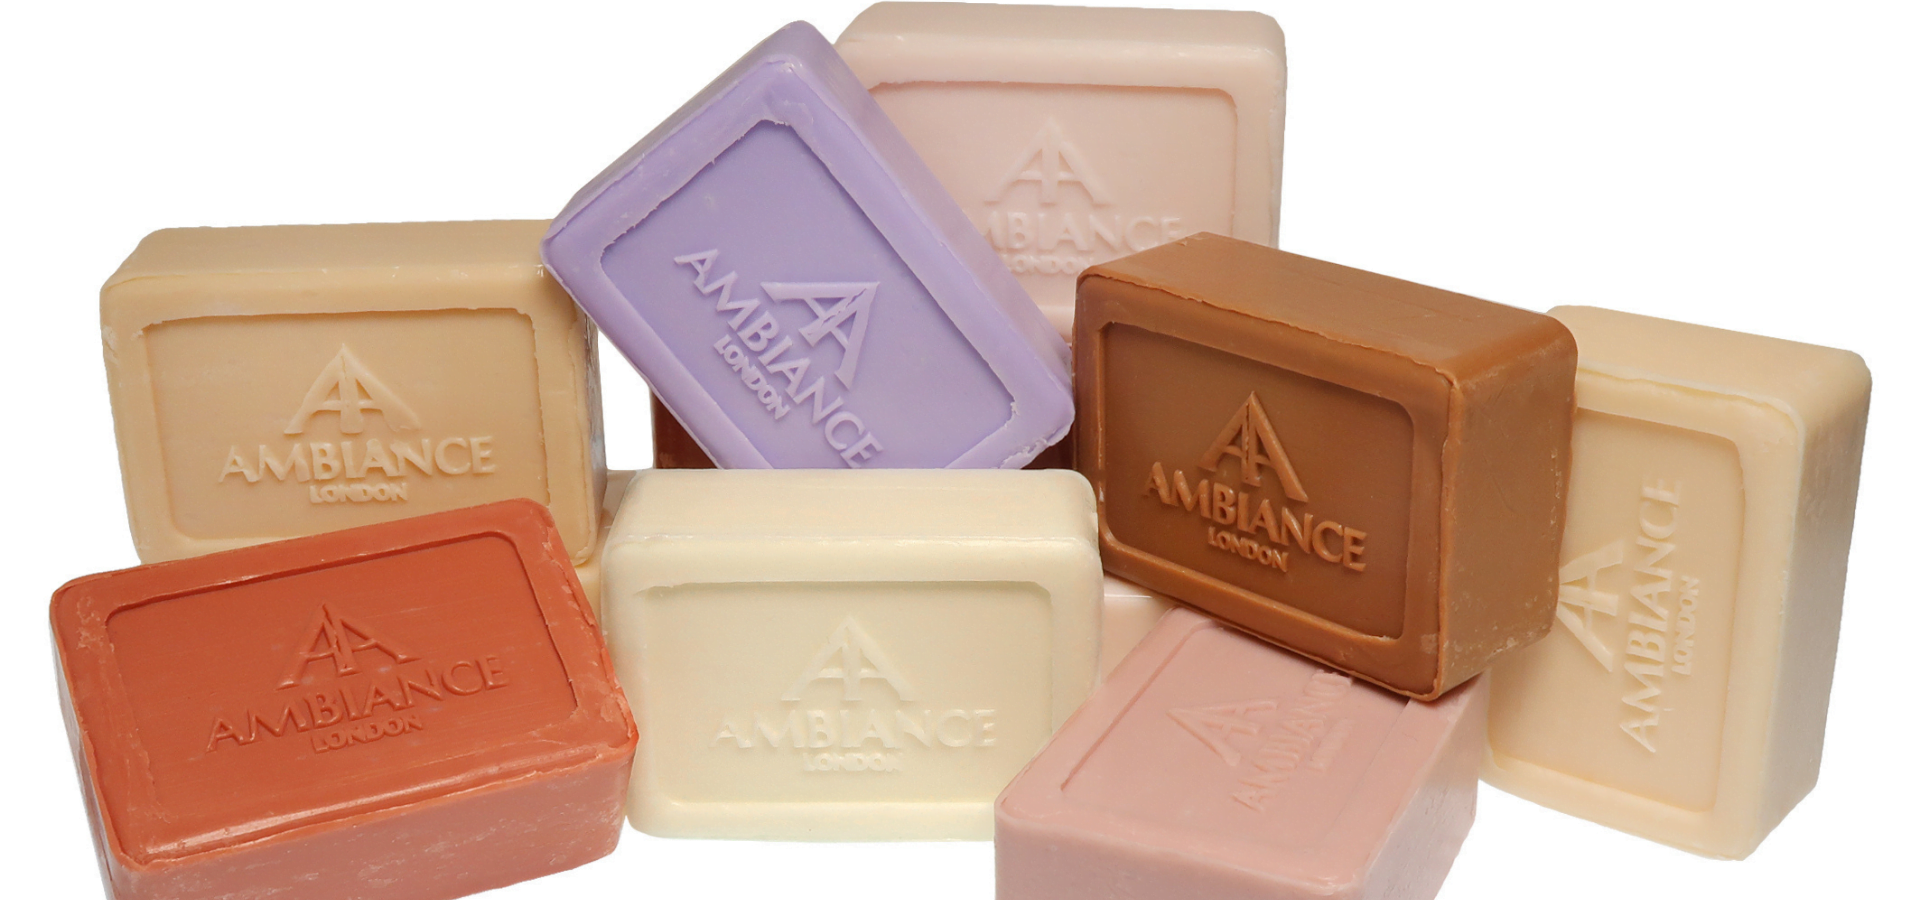 the most luxurious soap - ancienne ambiance luxury soap bars